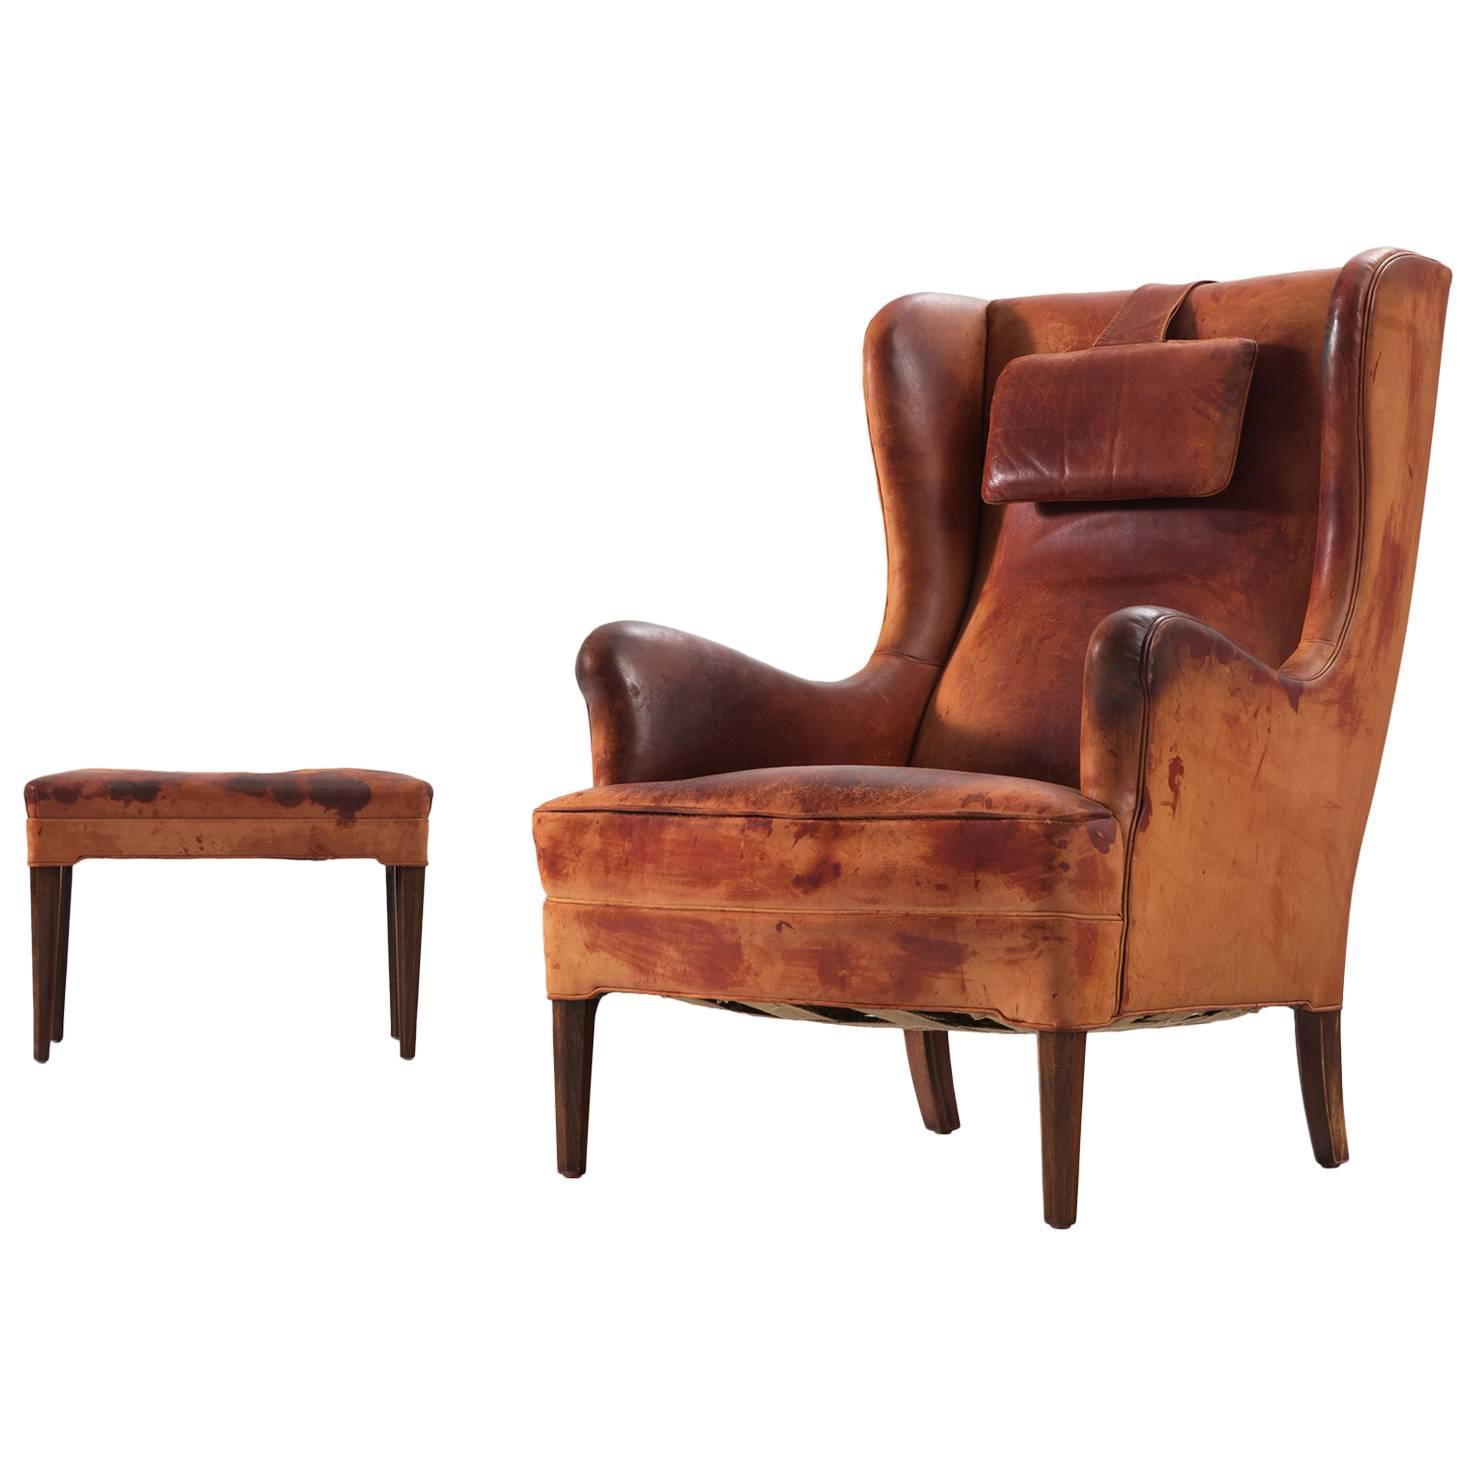 Frits Henningsen Wingback Chair And Ottoman In Original